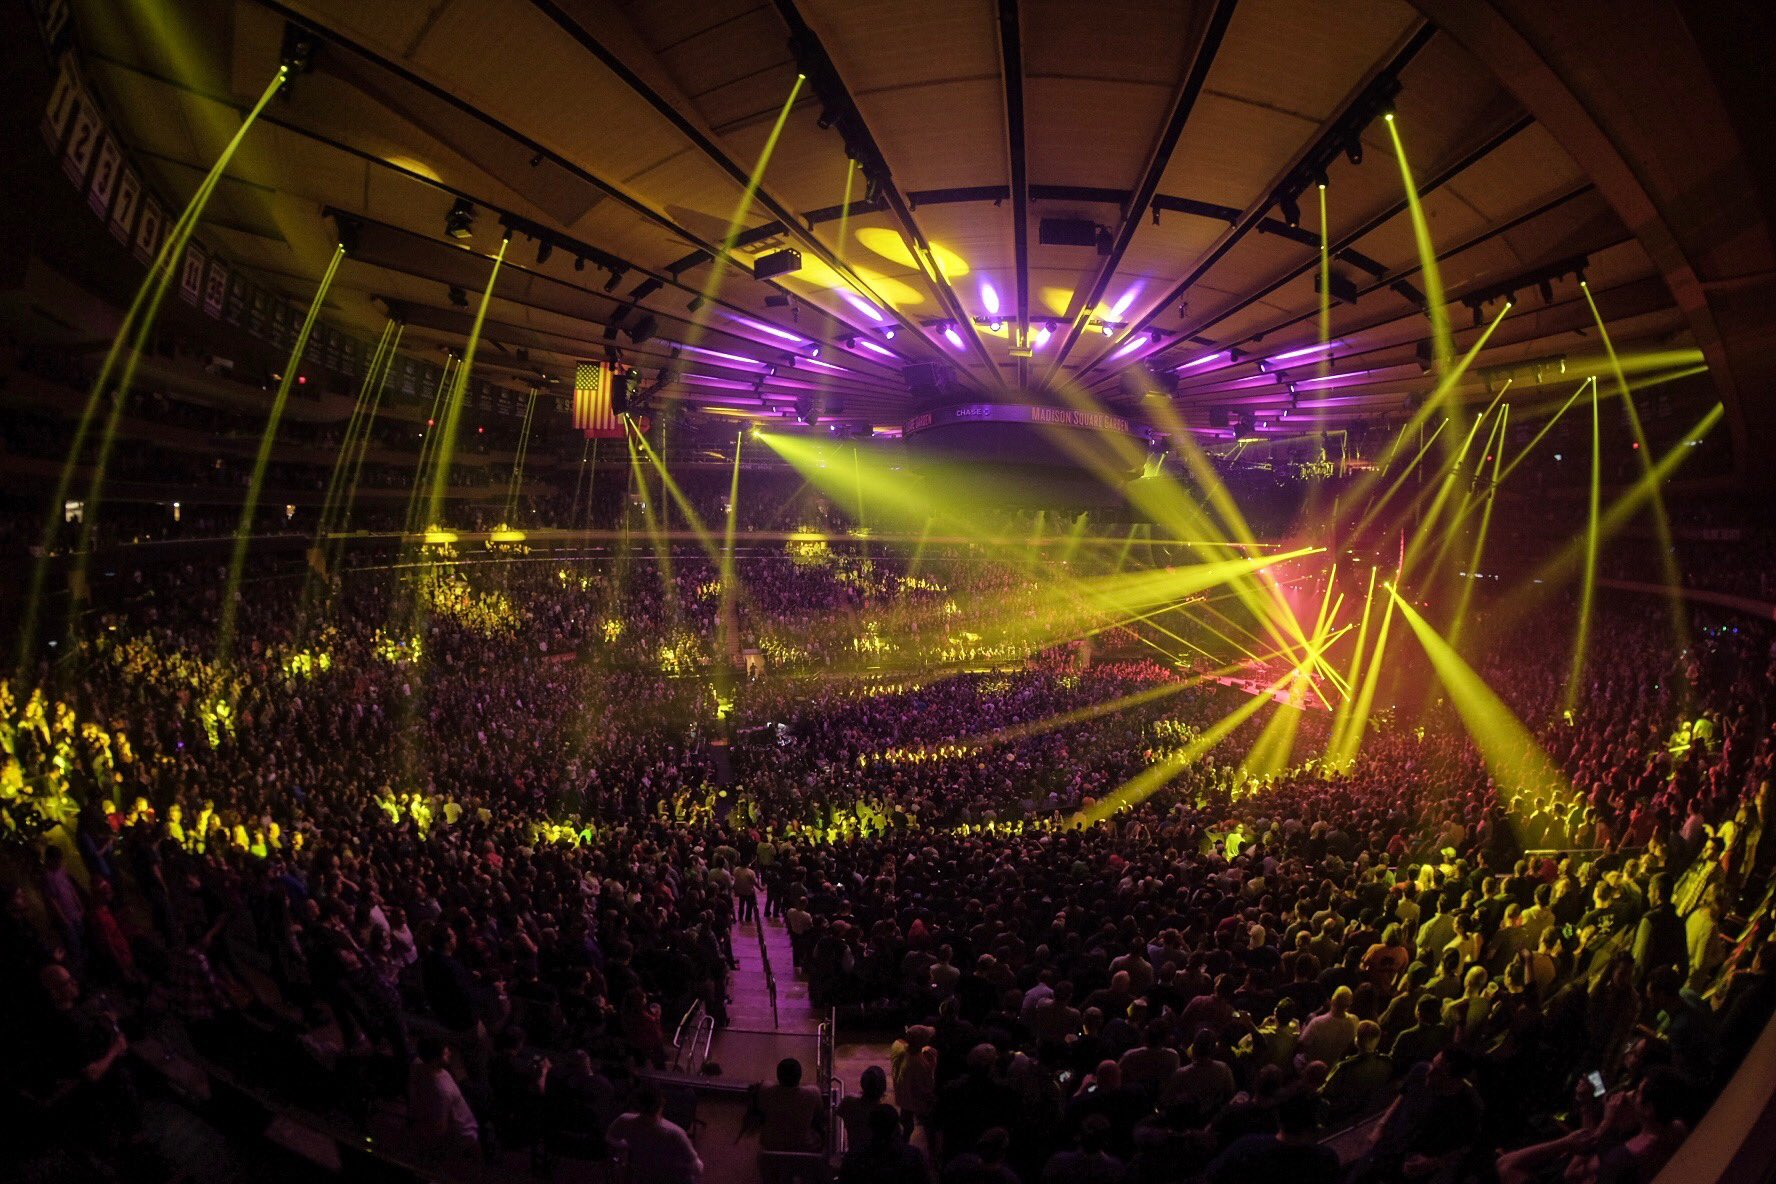 Photo © Phish (Jake Silko)